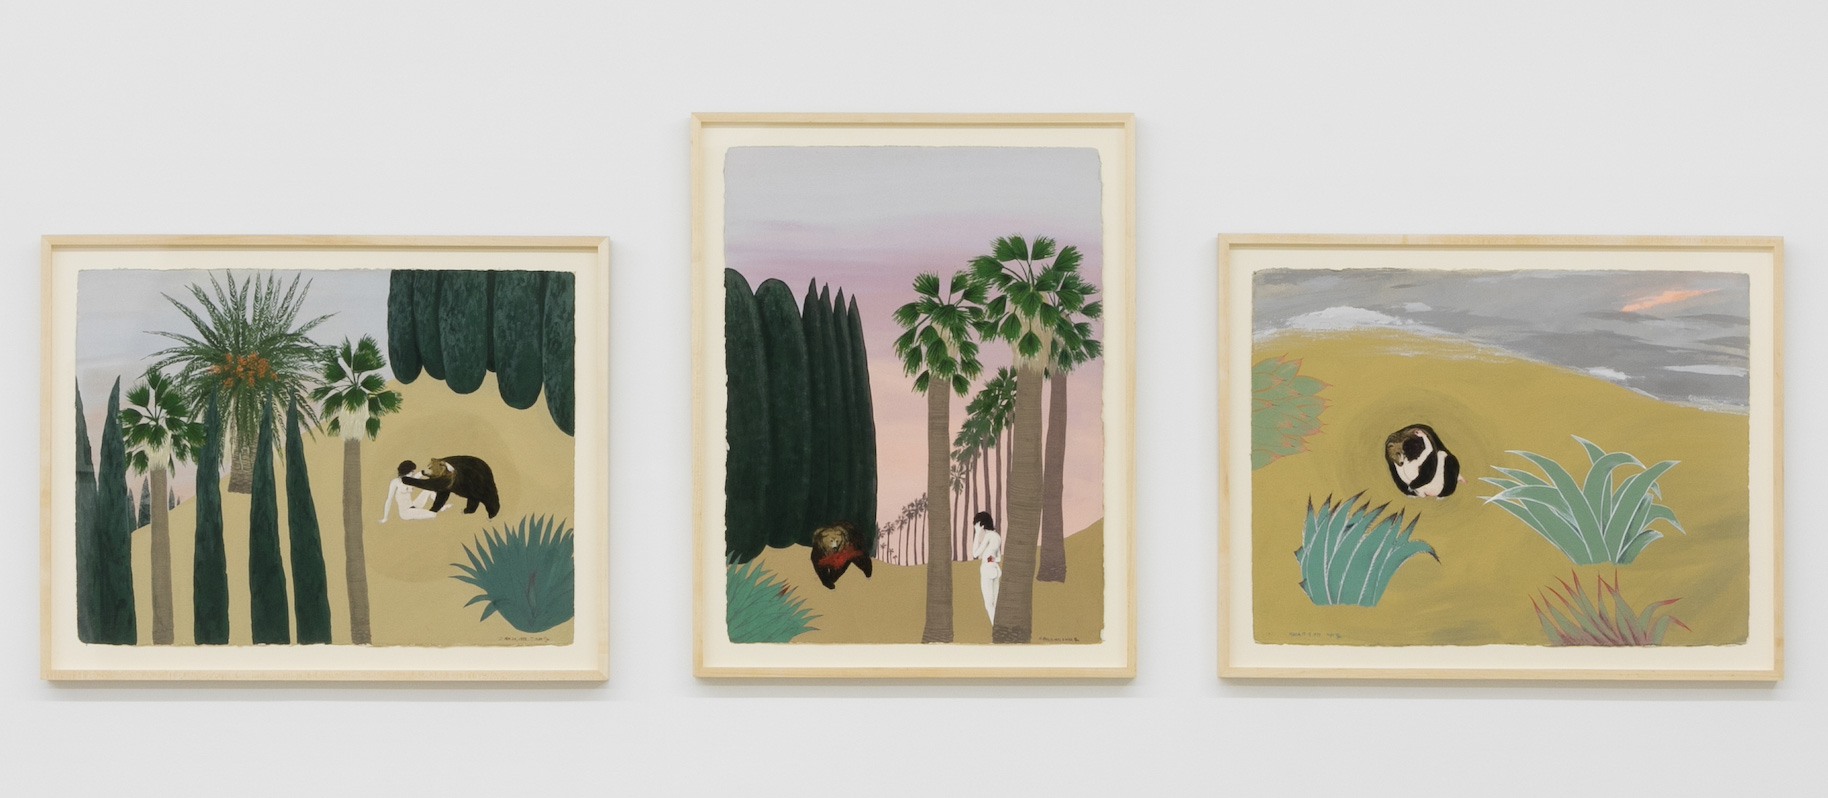 Mira Schor   Bear Triptych,  1972-1973  Gouache on Arches paper  Each: 22 x 30 inches